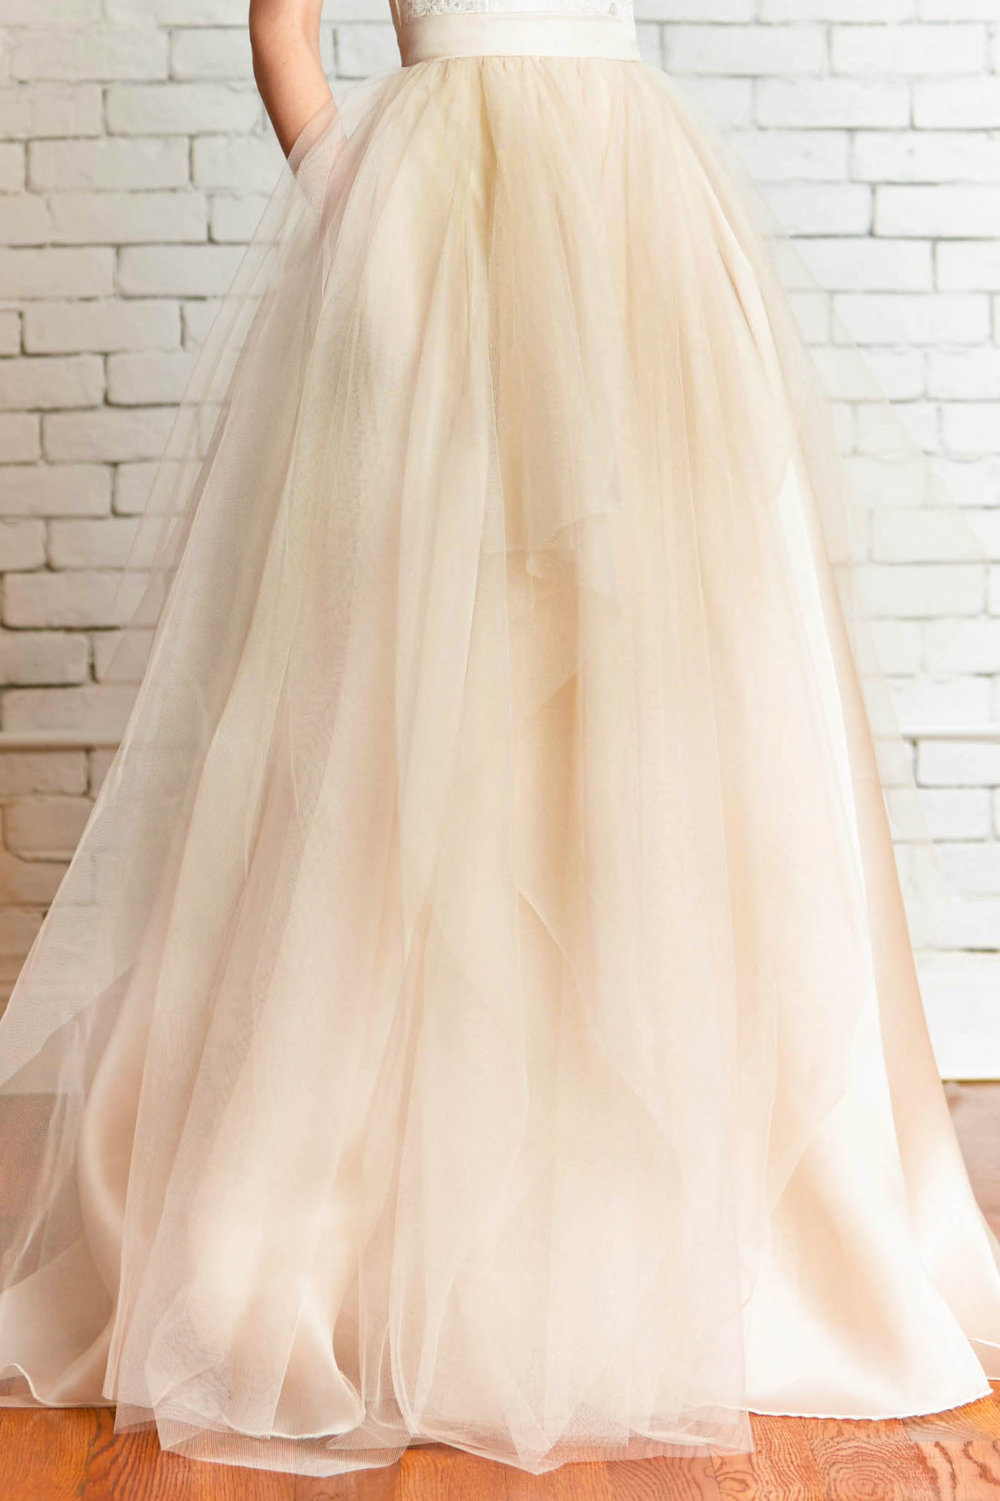 McKinley-Skirt-A-line_Tulle_Unique_Bridal_Look.jpg